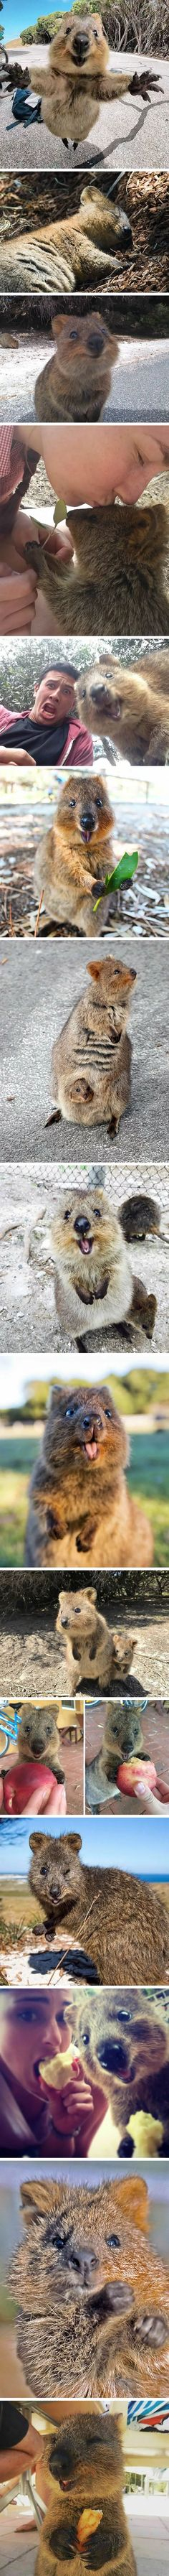 Quokka , happiest animal I've ever seen . (not mine) . Browse new photos about Quokka , happiest animal I've ever seen . (not mine) . Most Awesome Funny Photos Everyday! Because it's fun! Cute Animal Memes, Animal Jokes, Cute Animal Pictures, Cute Funny Animals, Cute Dogs, Cute Babies, Happy Animals, Animals And Pets, Quokka